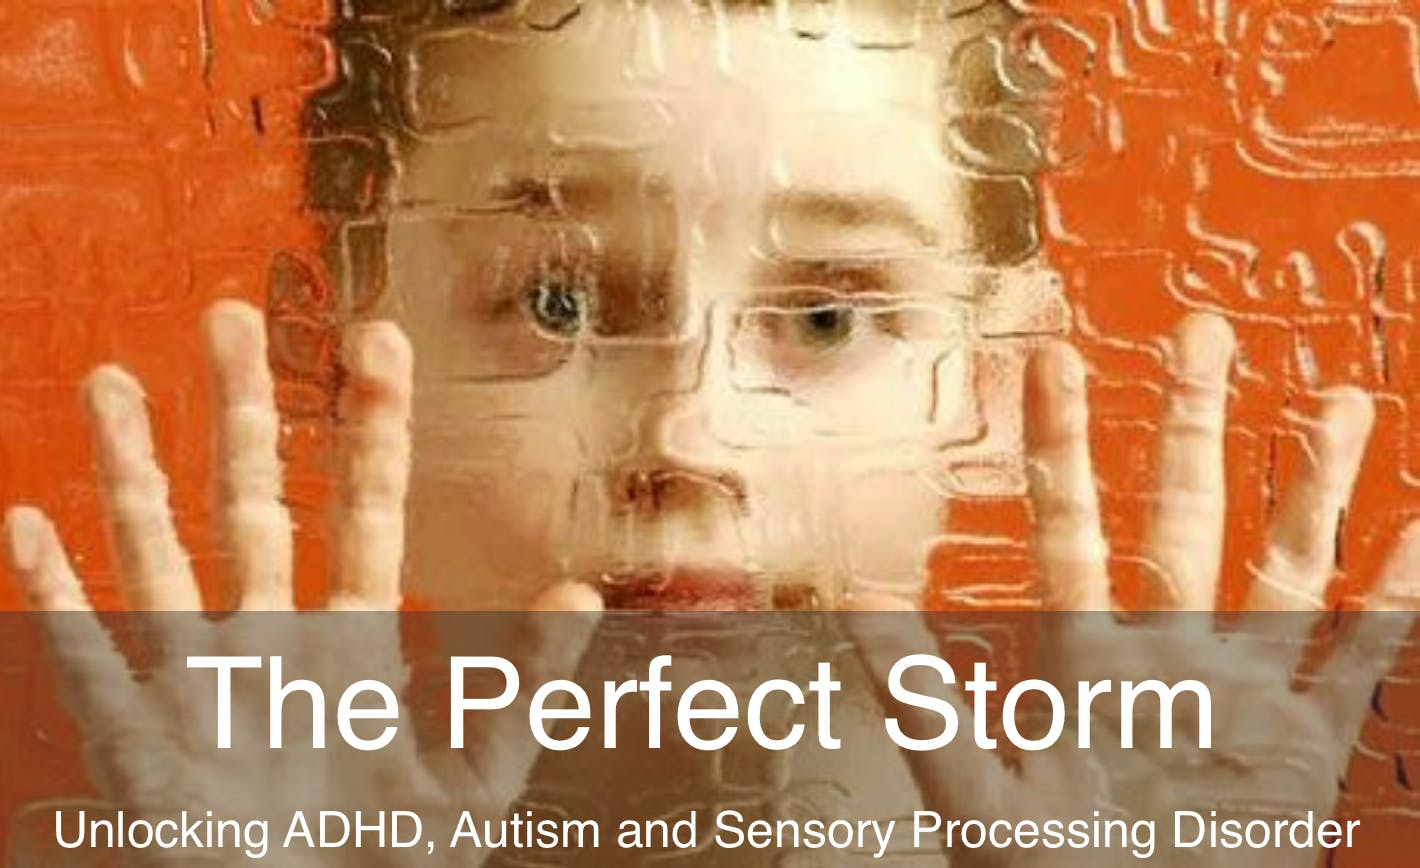 ADHD, Autism and Sensory Processing Workshop for Parents